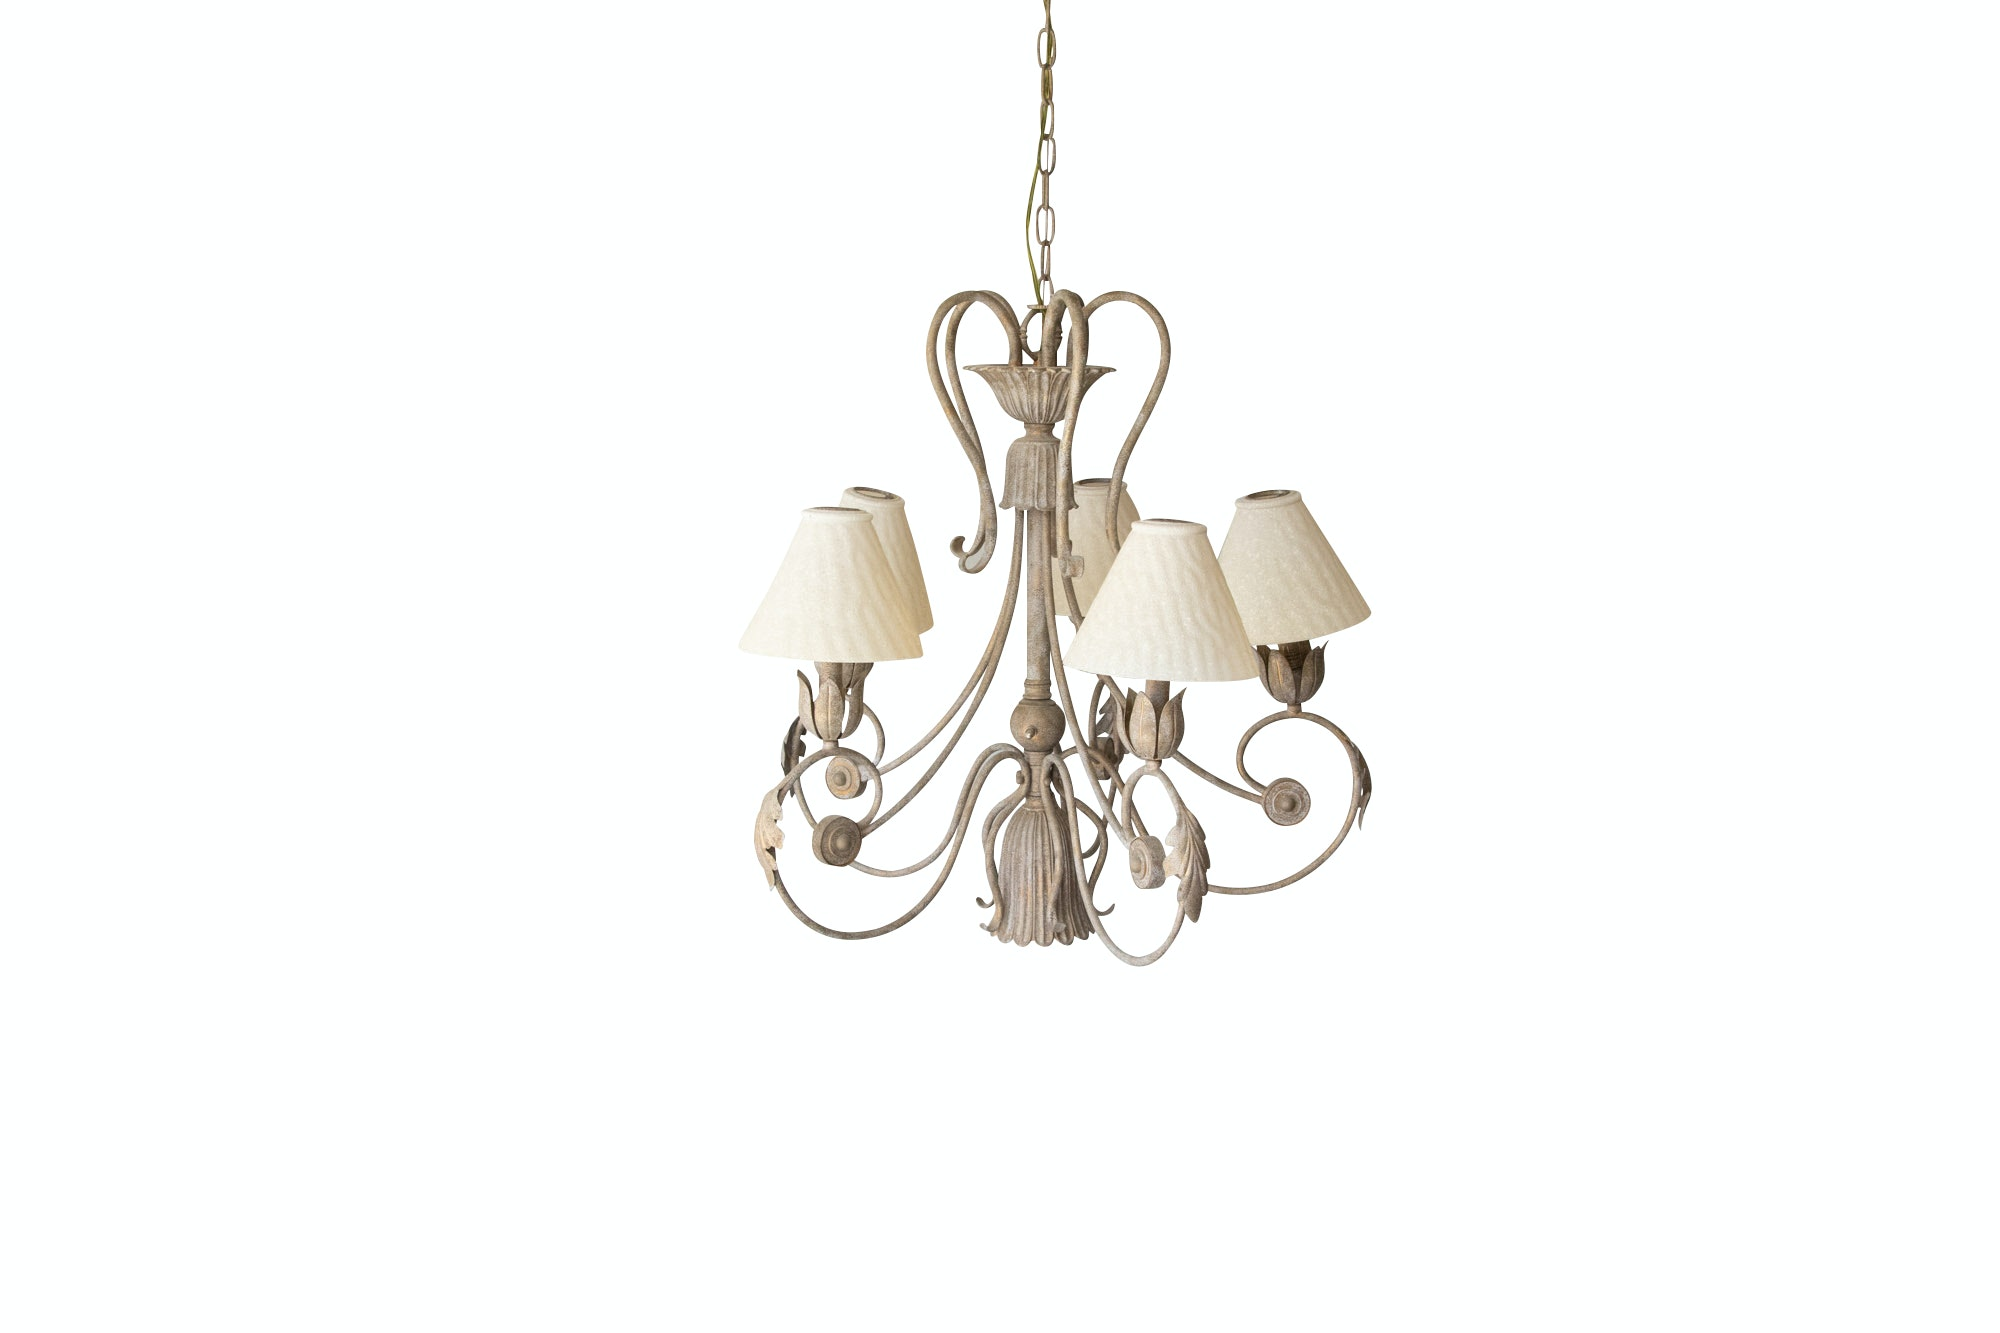 Contemporary Neoclassical Style Chandelier